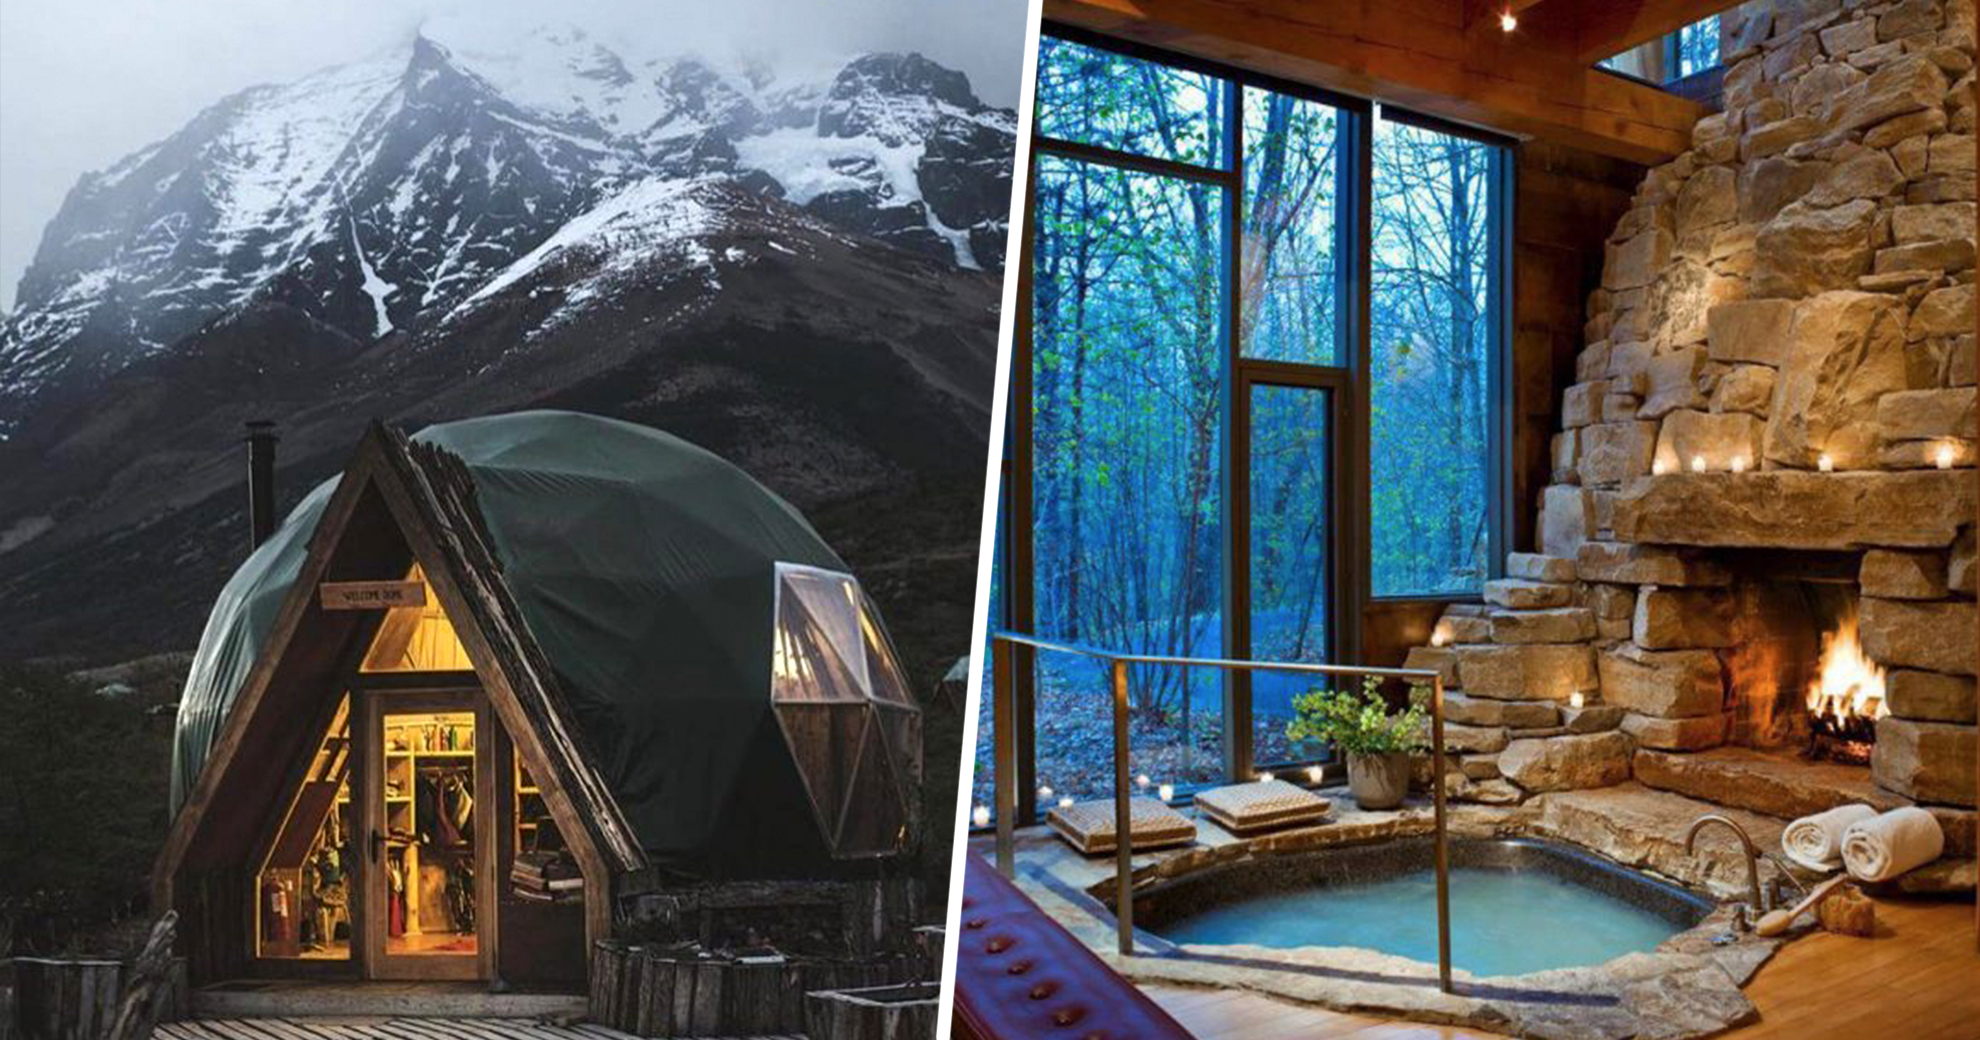 25 Super Cozy Places You'll Want To Teleport To Immediately